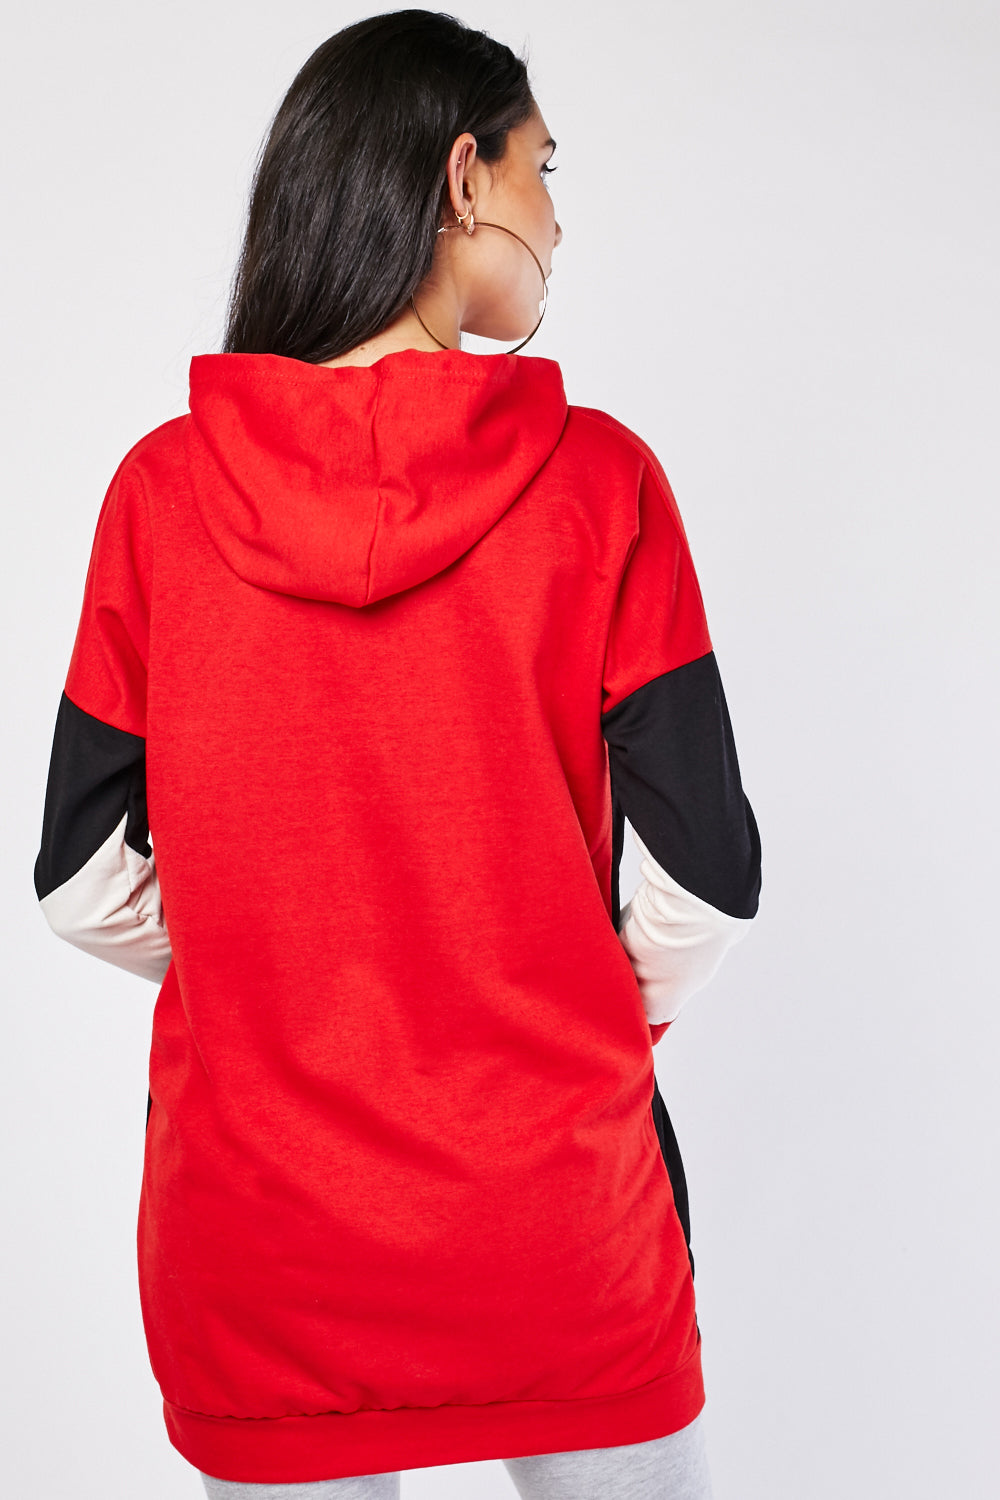 Nora Contrast Block Color Longline Hoodie Top-Woven Trends